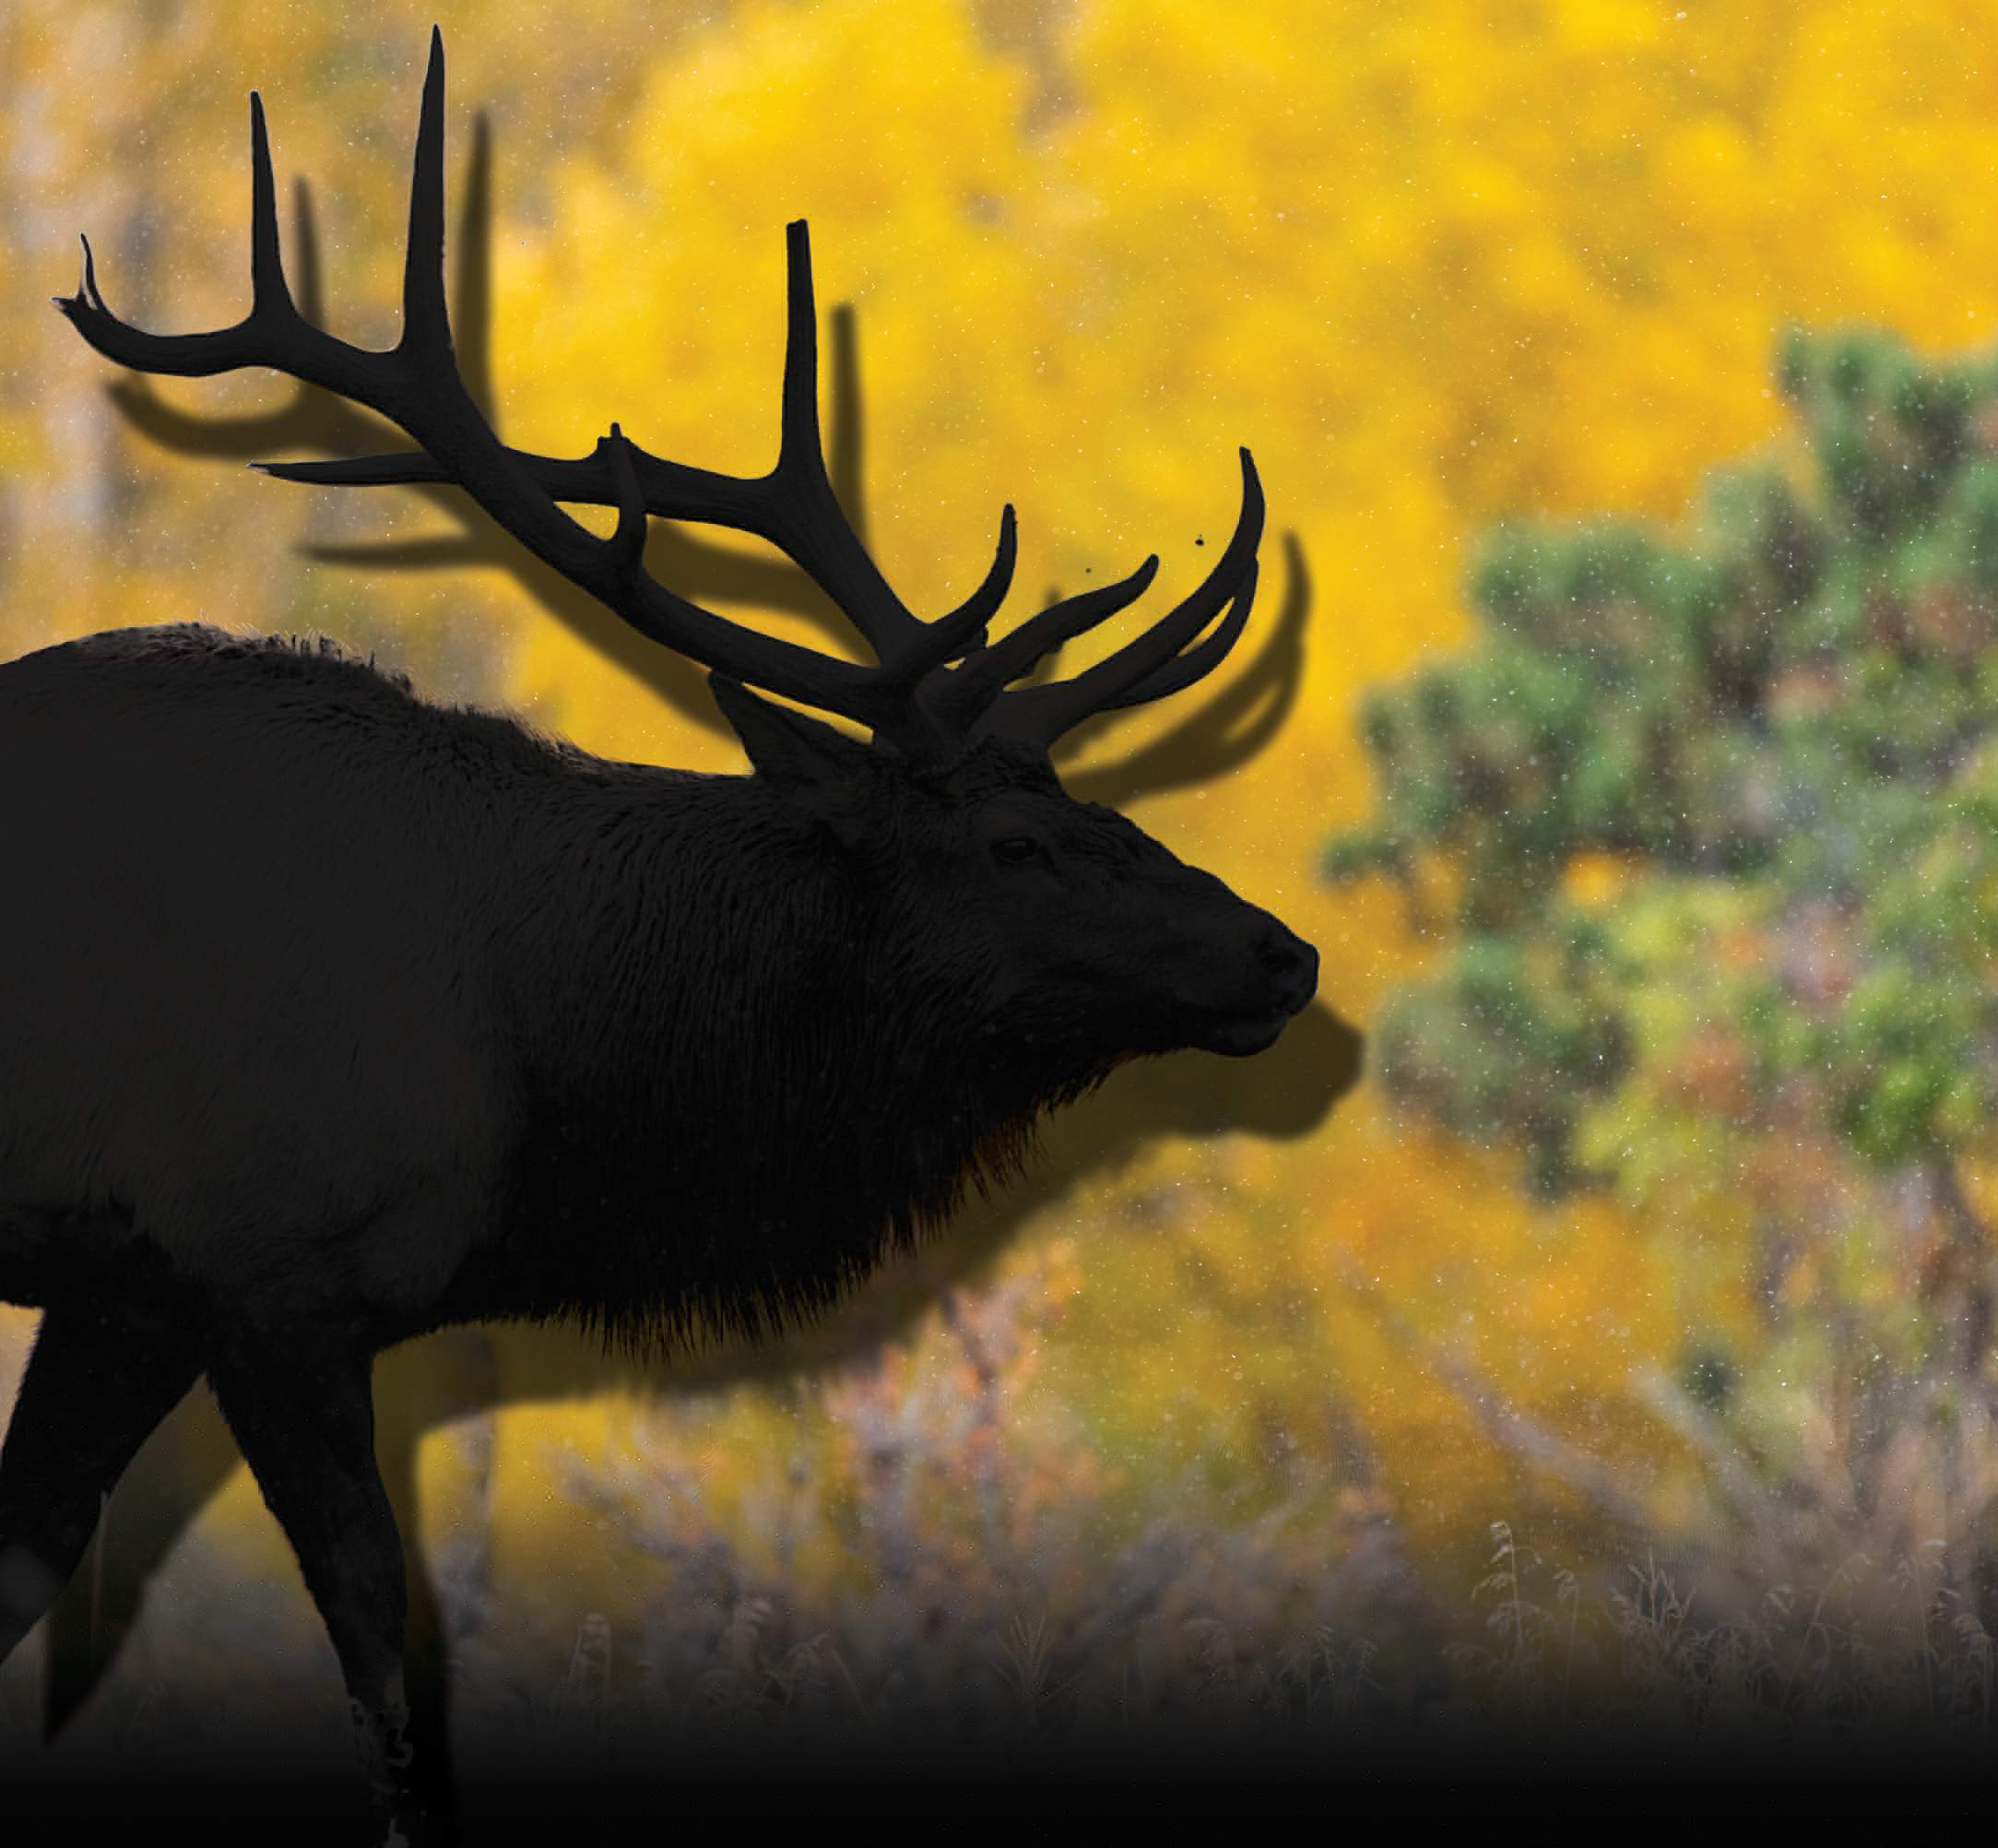 Where have all the elk gone?